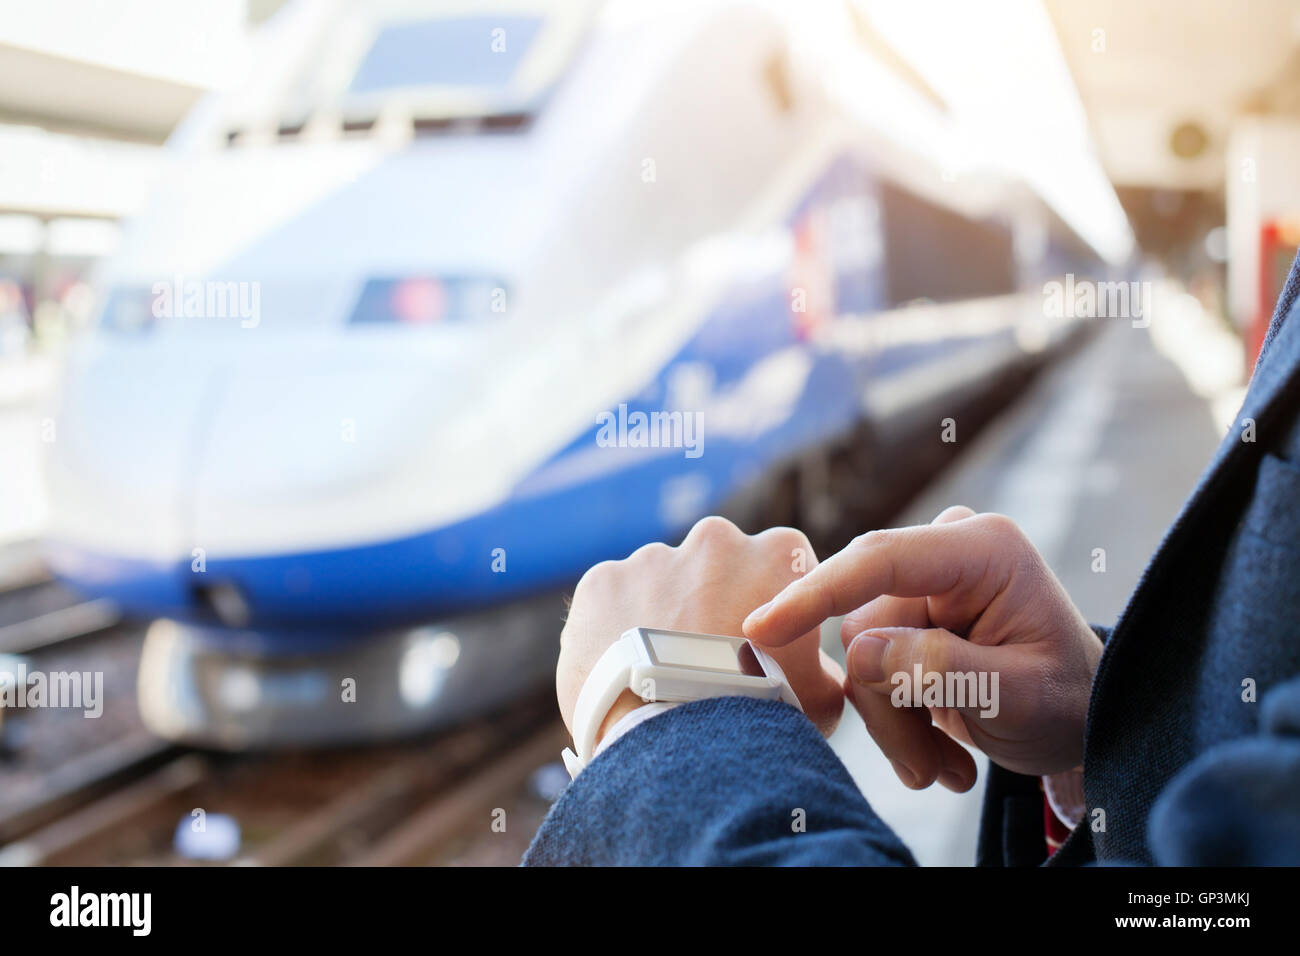 passenger using smart watch at train station - Stock Image